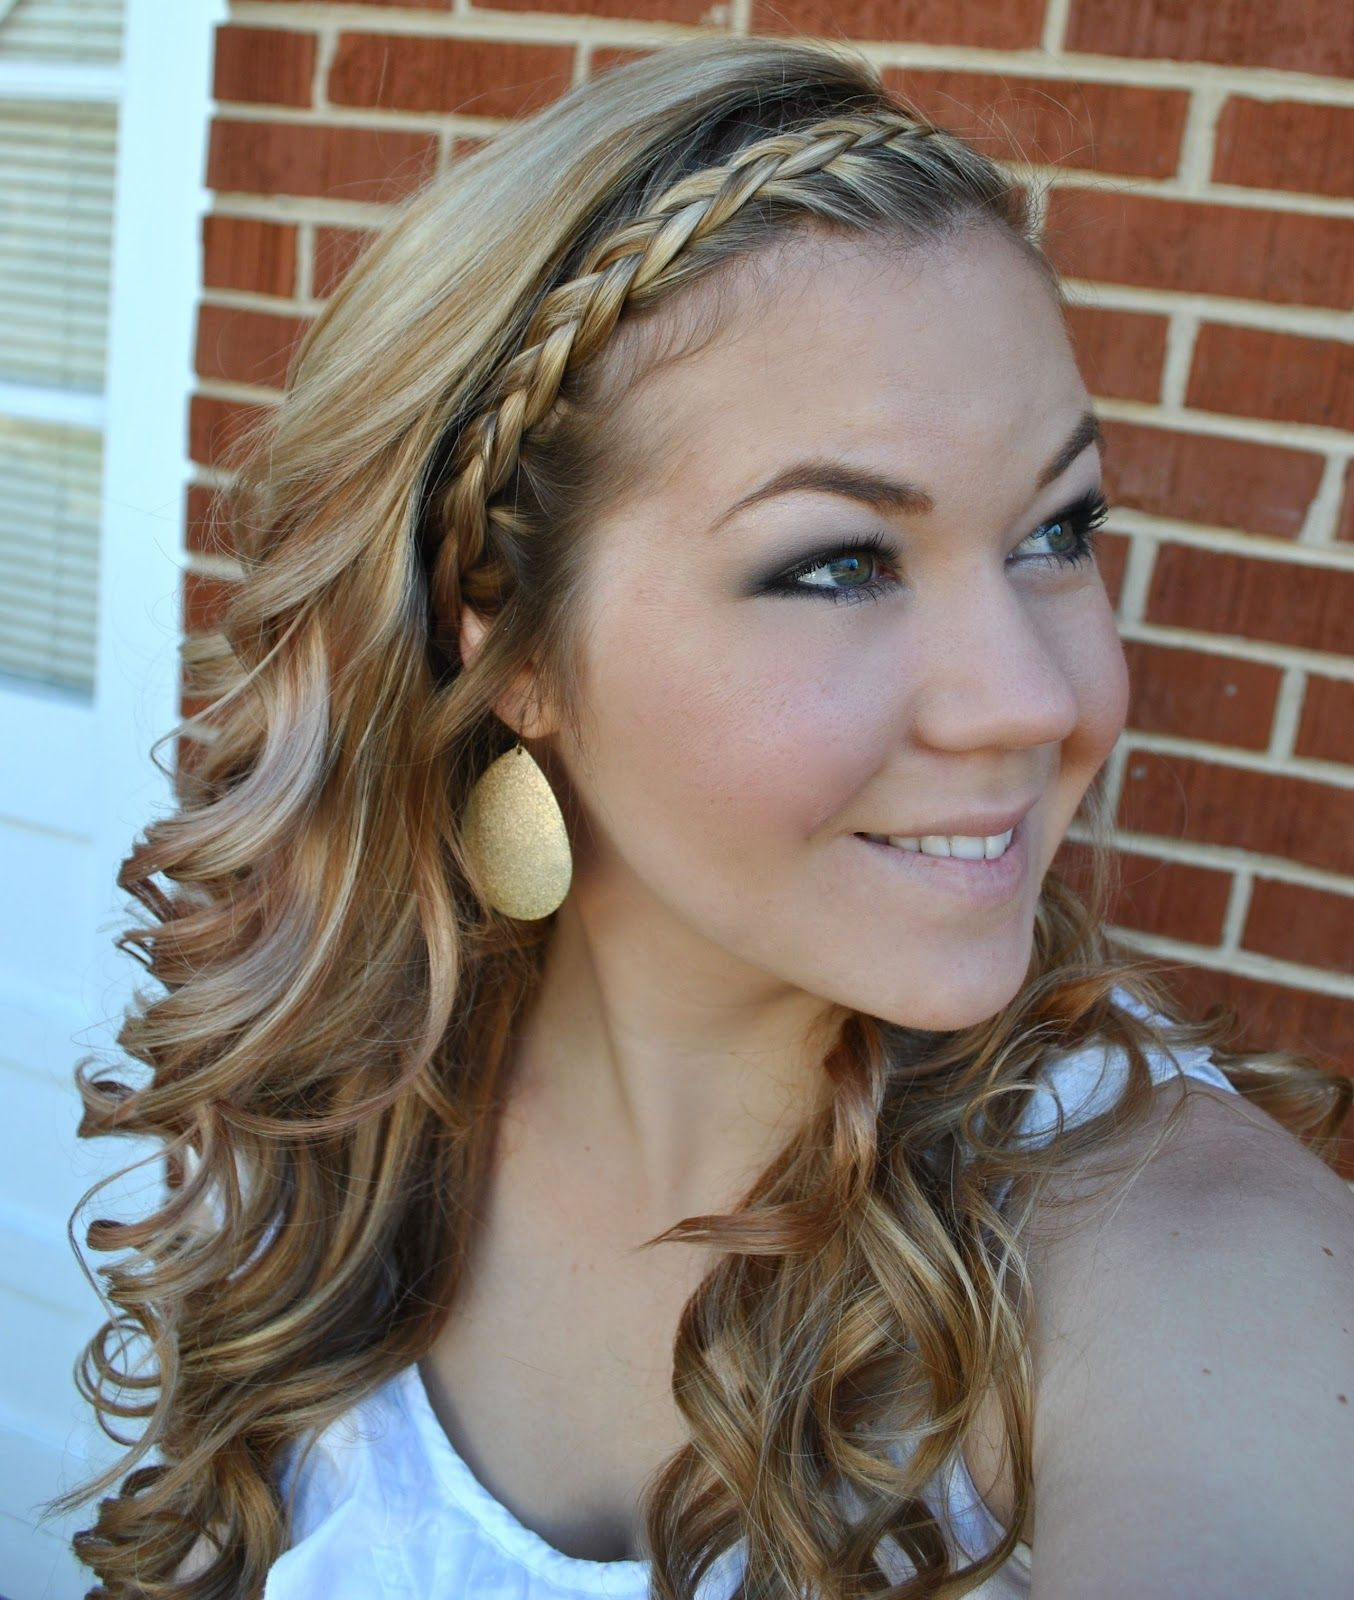 2019 year for girls- Braid French headband with curls pictures